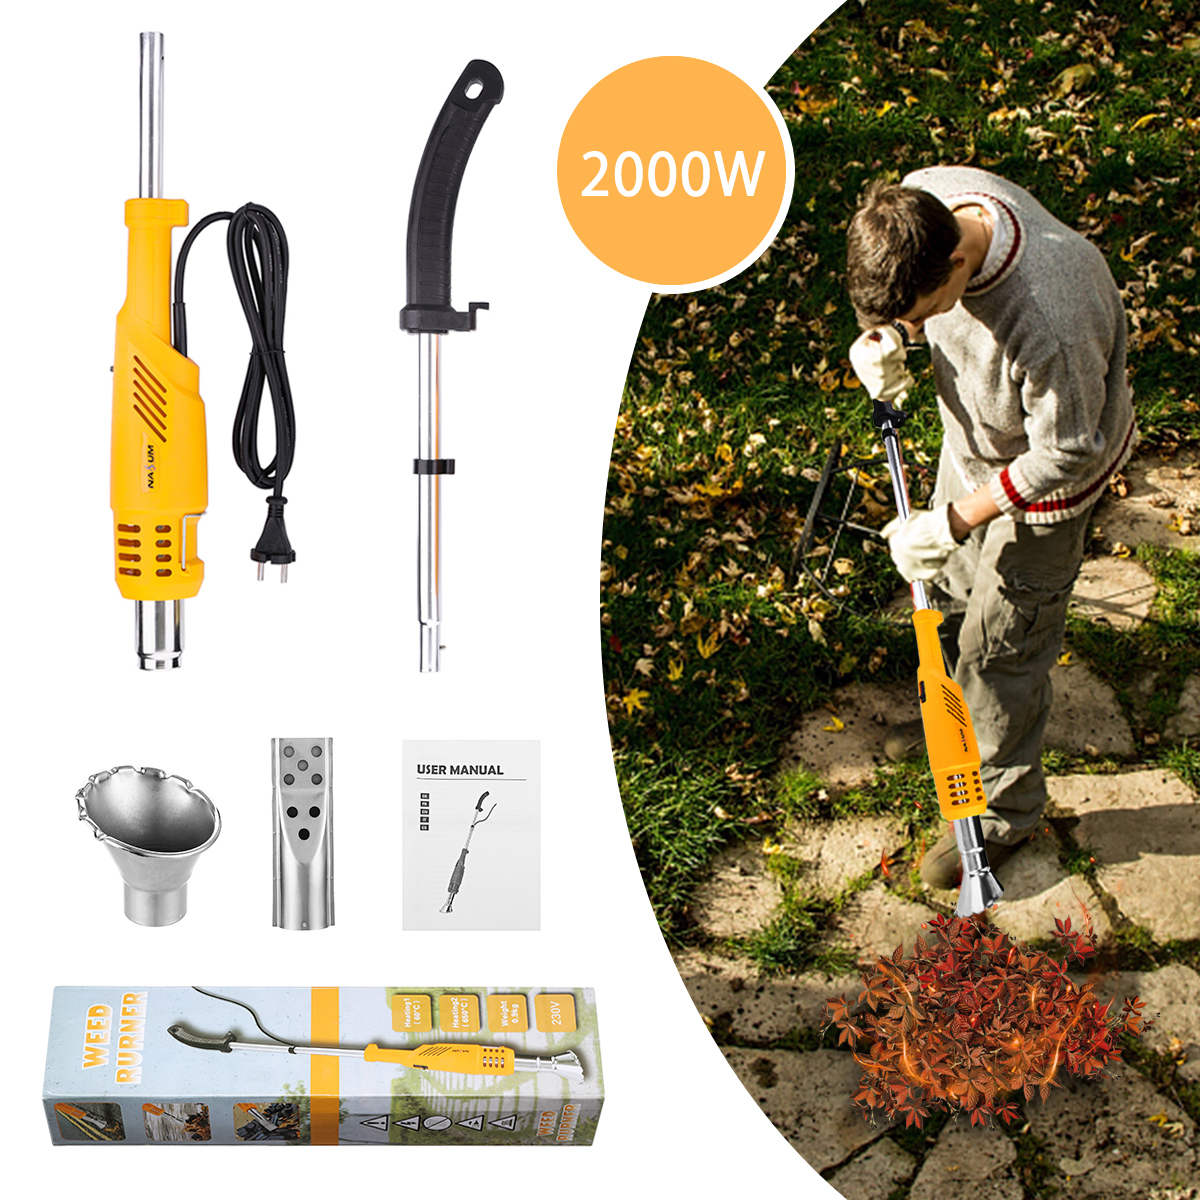 2000W Electric Thermal Weeder Hot Air Weed Killer Grass Flamethrower Weed Burner of Garden Tools